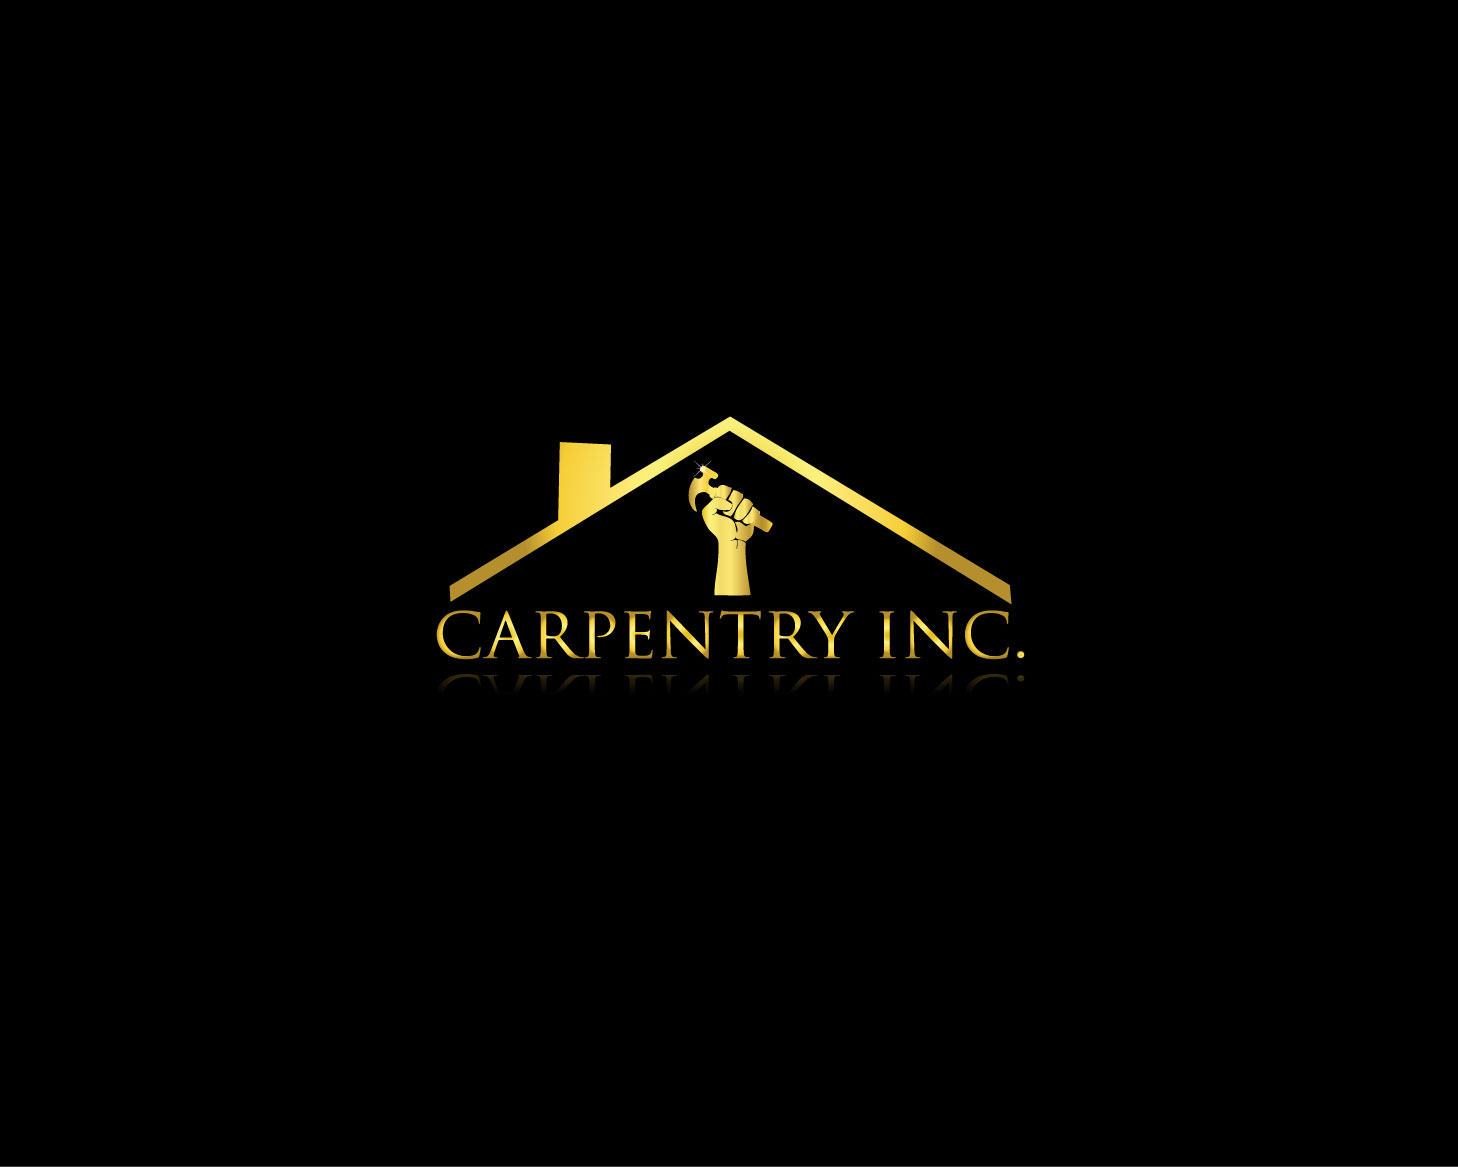 Logo Design by Rowel Samson - Entry No. 21 in the Logo Design Contest Creative Logo Design for Carpentry inc..